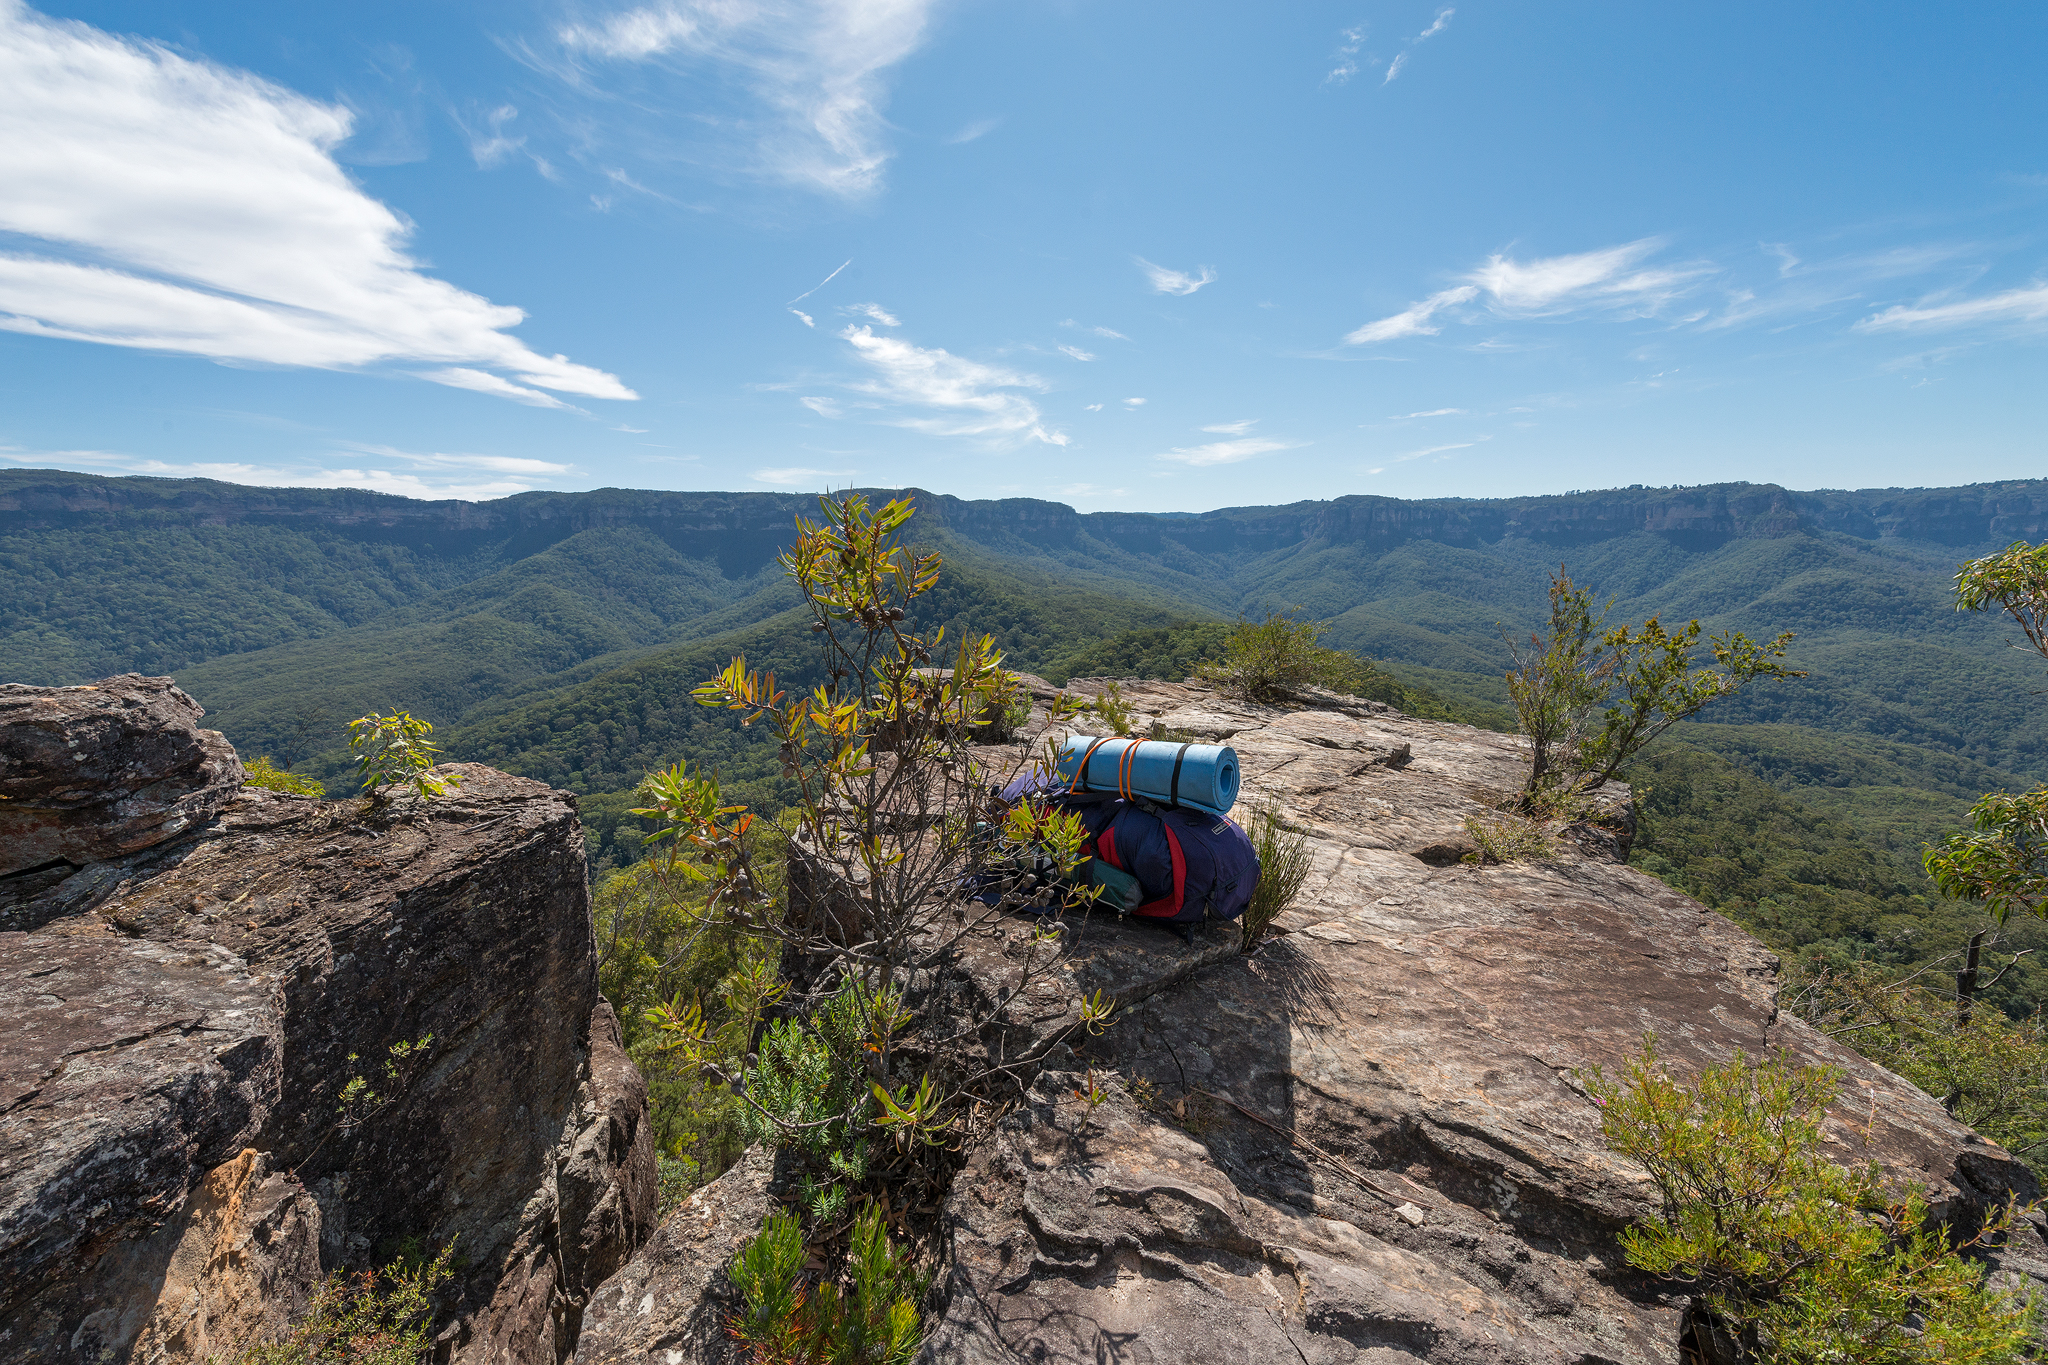 Looking back across the jamison valley to Katoomba